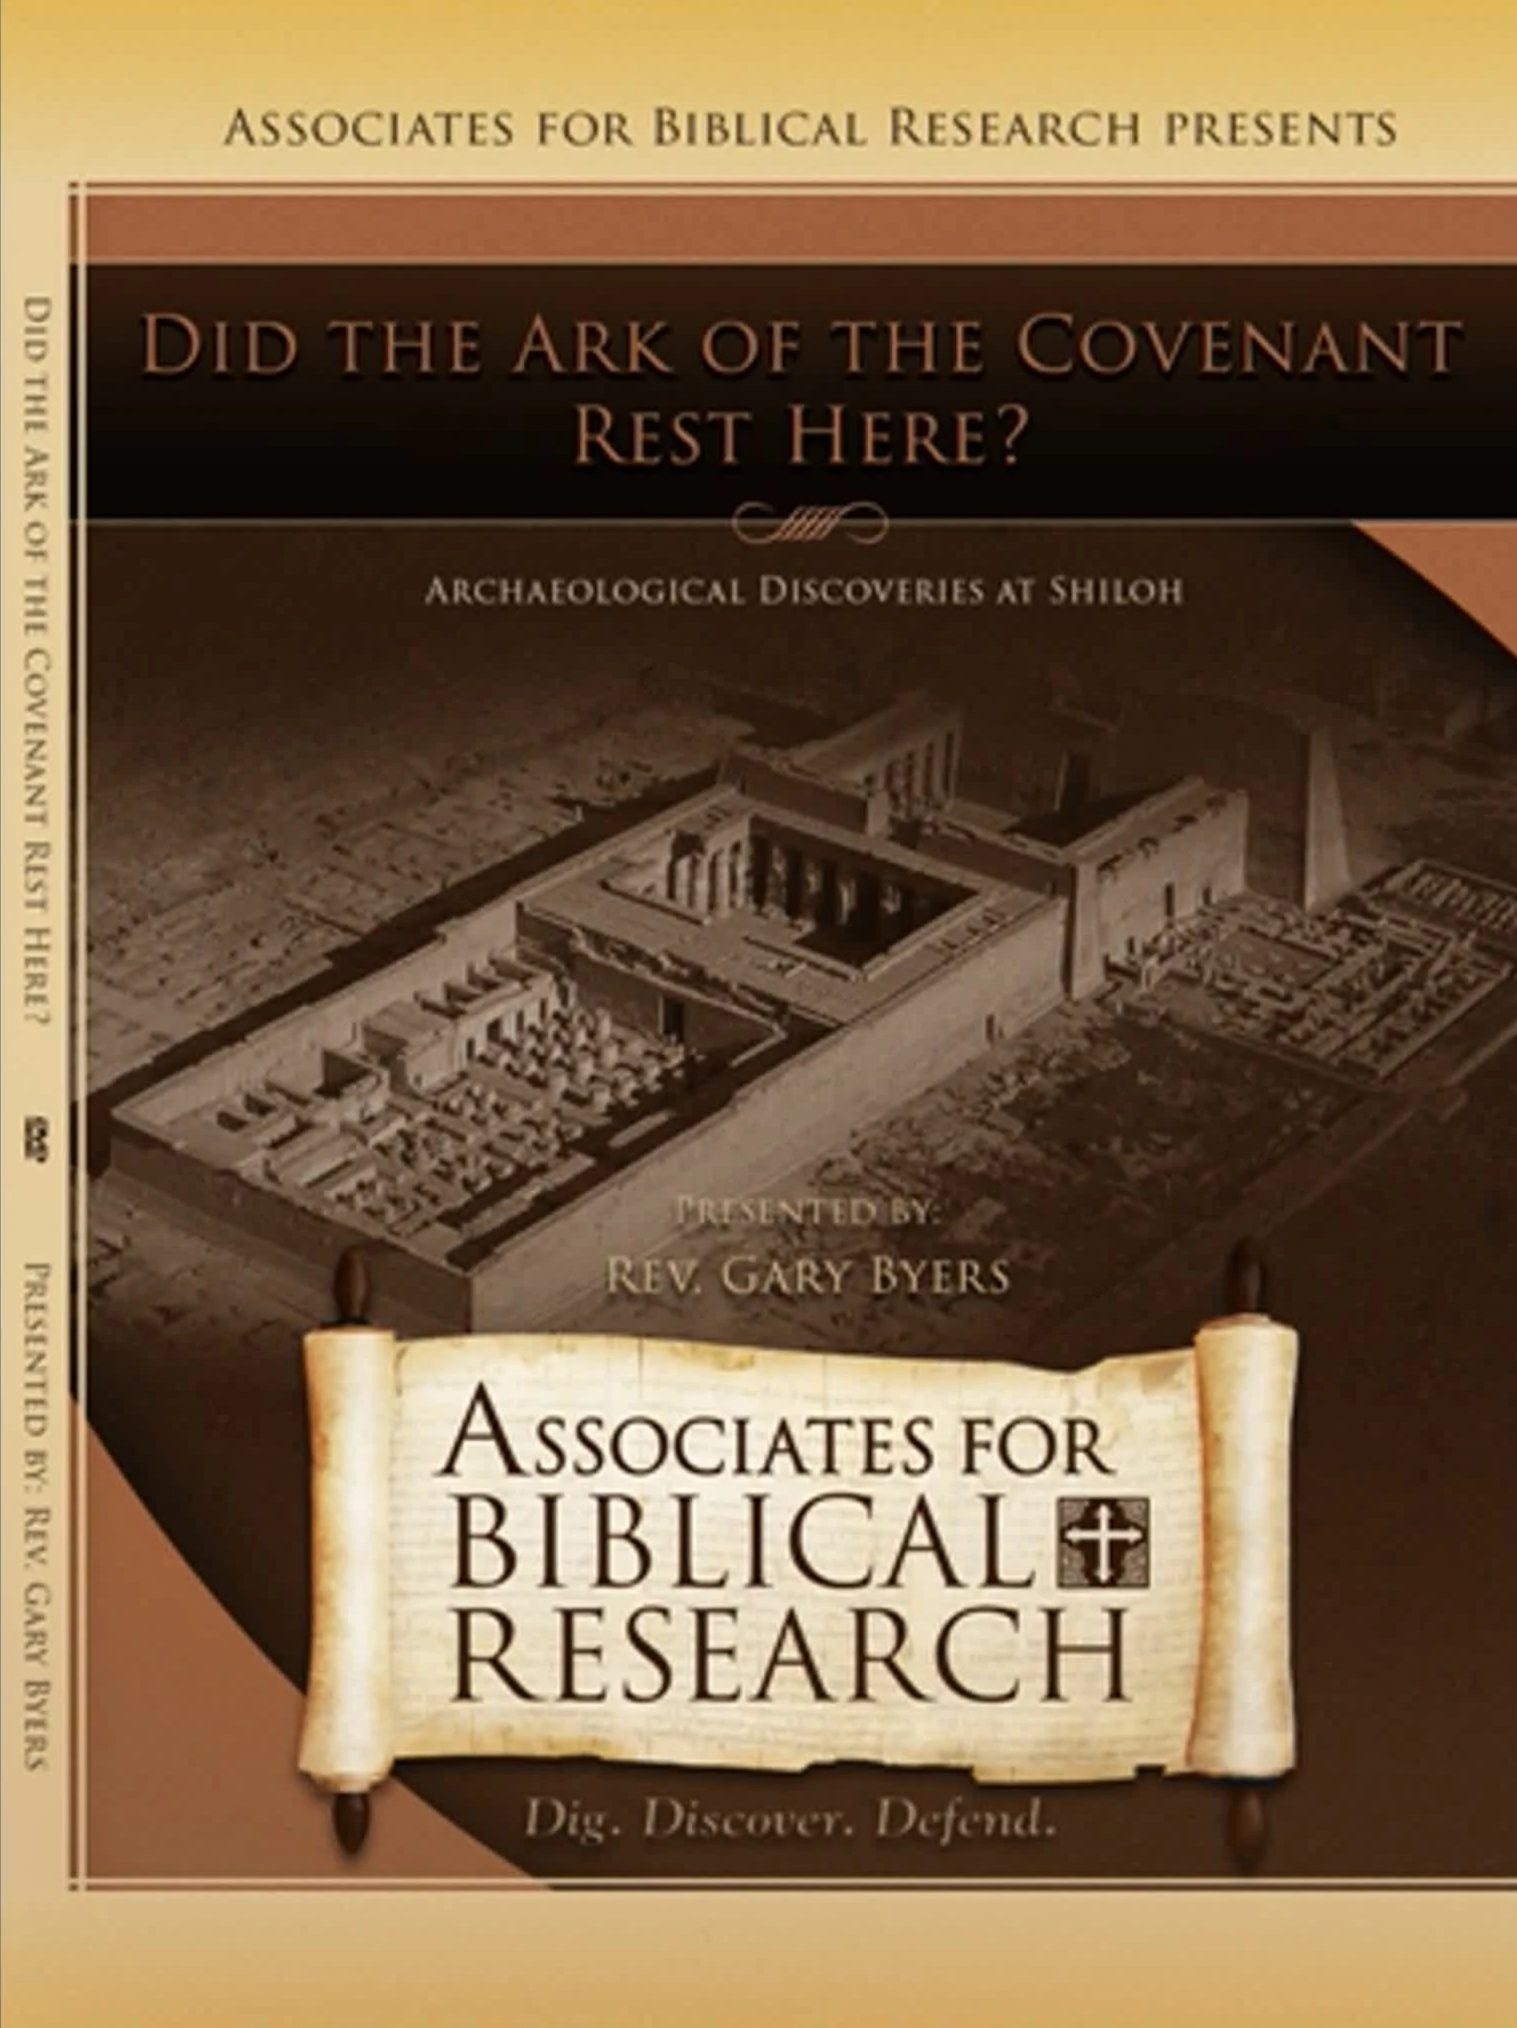 Did the Ark of the Covenant Rest Here? Archaeological Finds from Shiloh DVD